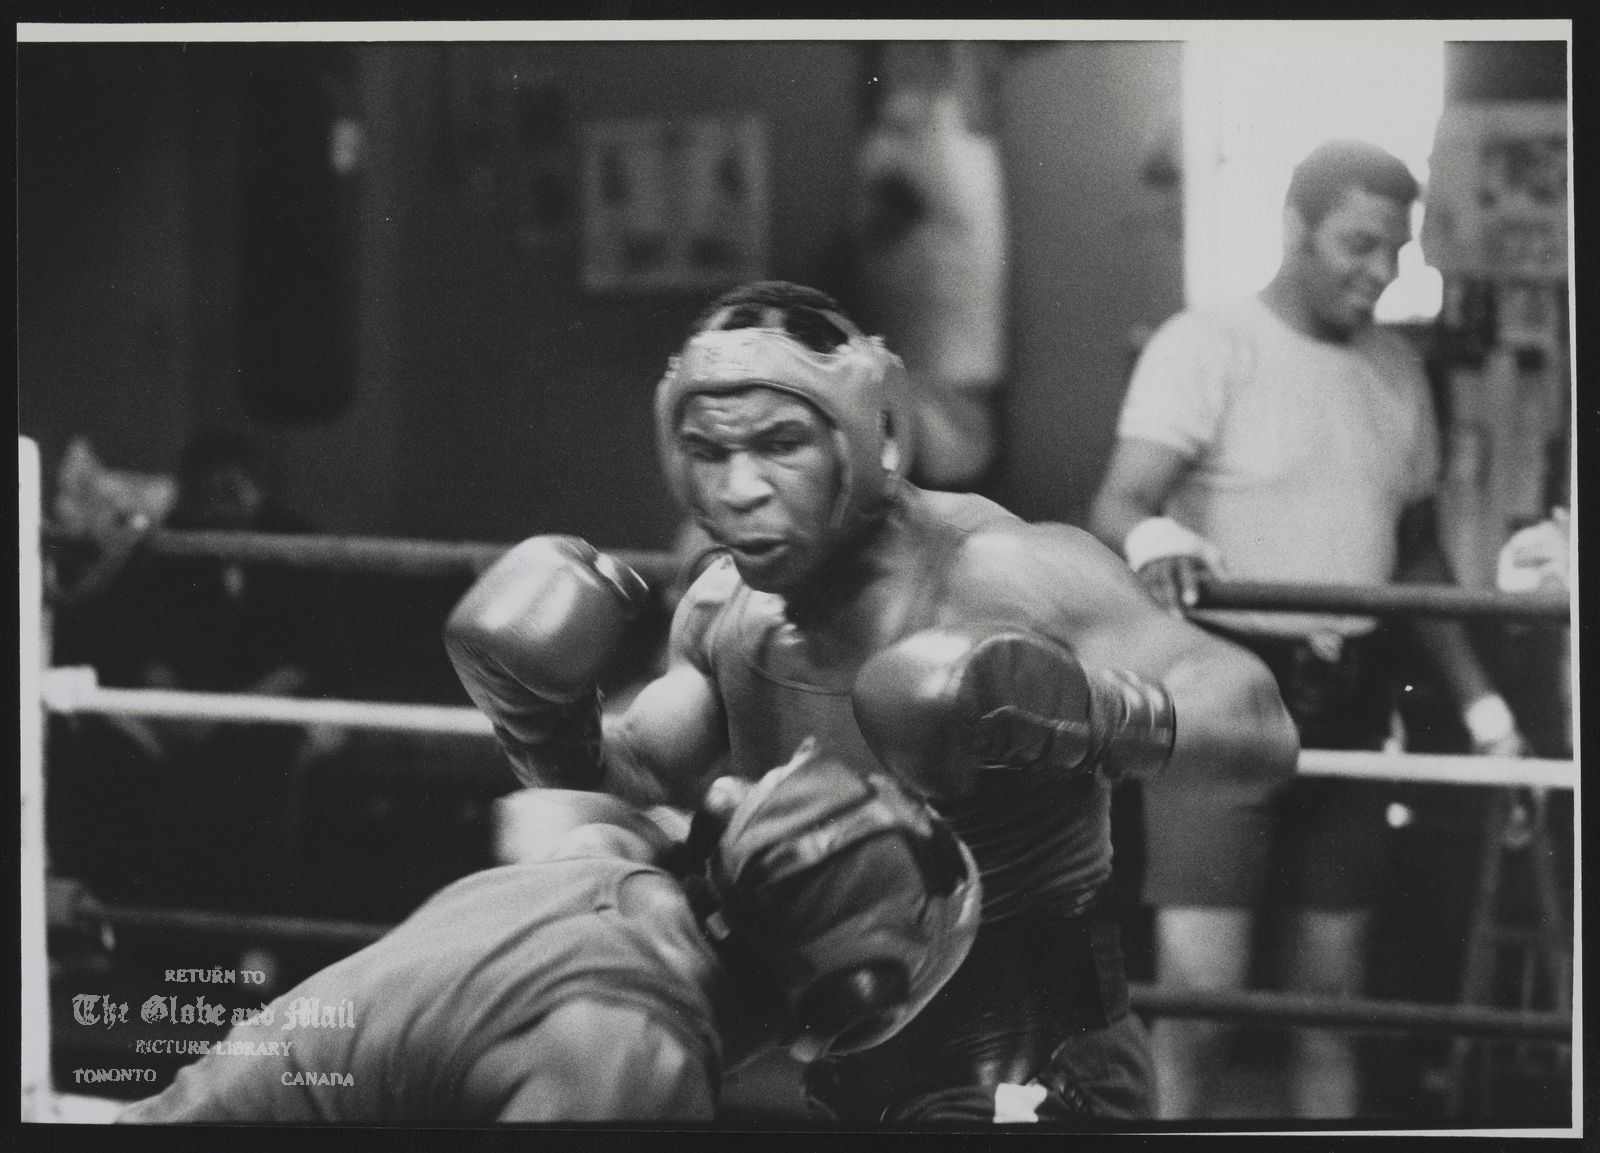 The notes transcribed from the back of this photograph are as follows: MIKE TYSON BOXING MIKE TYSON, THE GREAT BLACK HOPE, SPARS IN A TRAINING CAMP AT CATSKILL, N Y., IN 1986.